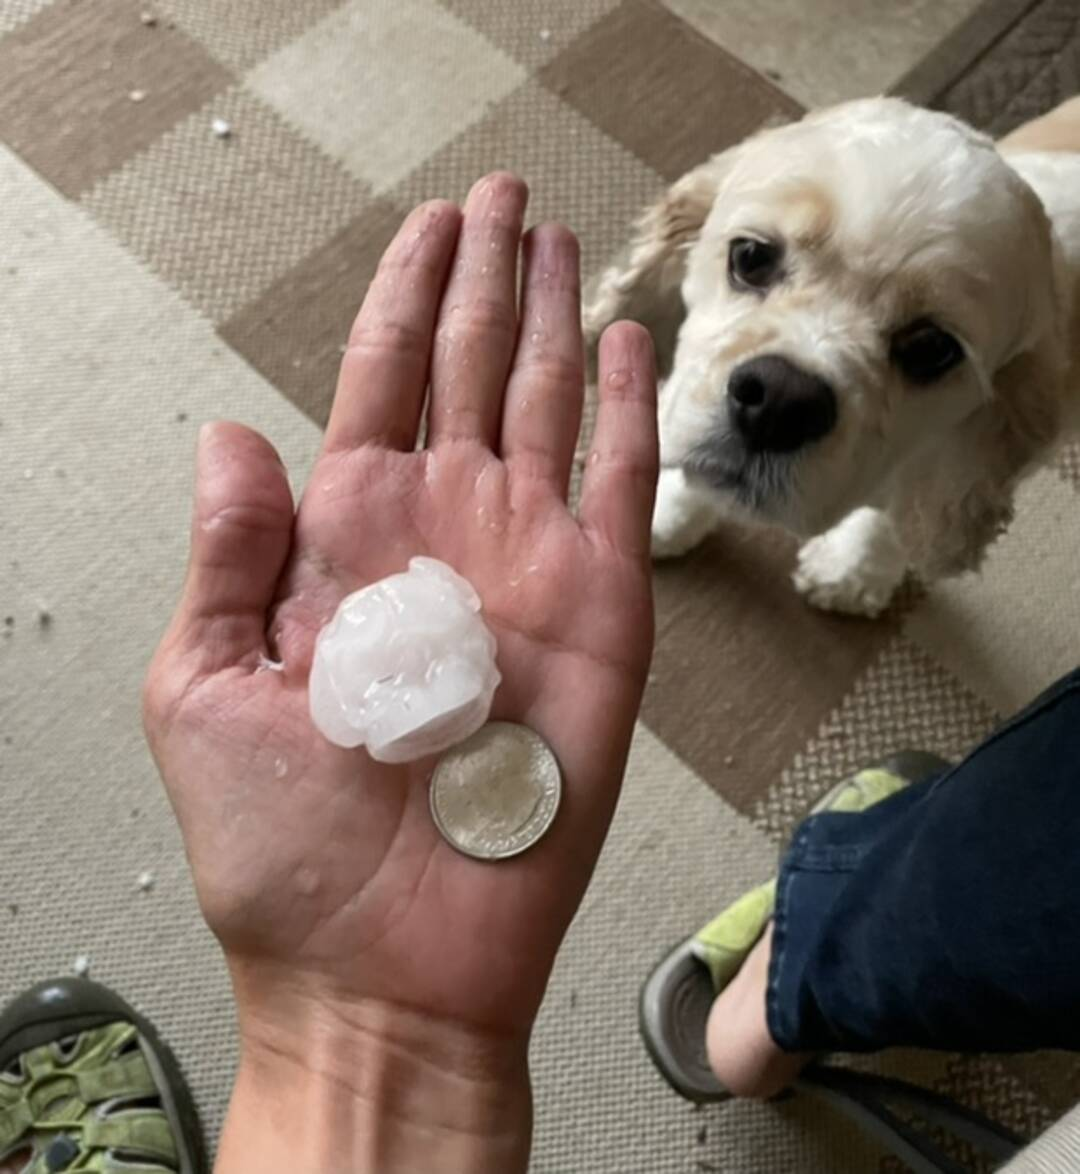 Mr. Caskey,  I took this at around 7:10 pm. The storm brought some nice size hail and as you can see I included both a quarter and a cocker spaniel for size reference.  I teach Prek at SWISD and the kids love to talk about the weather! Every day we sing, How's the weather out today?! You can bet we will discuss this tomorrow.  Ms. Smith